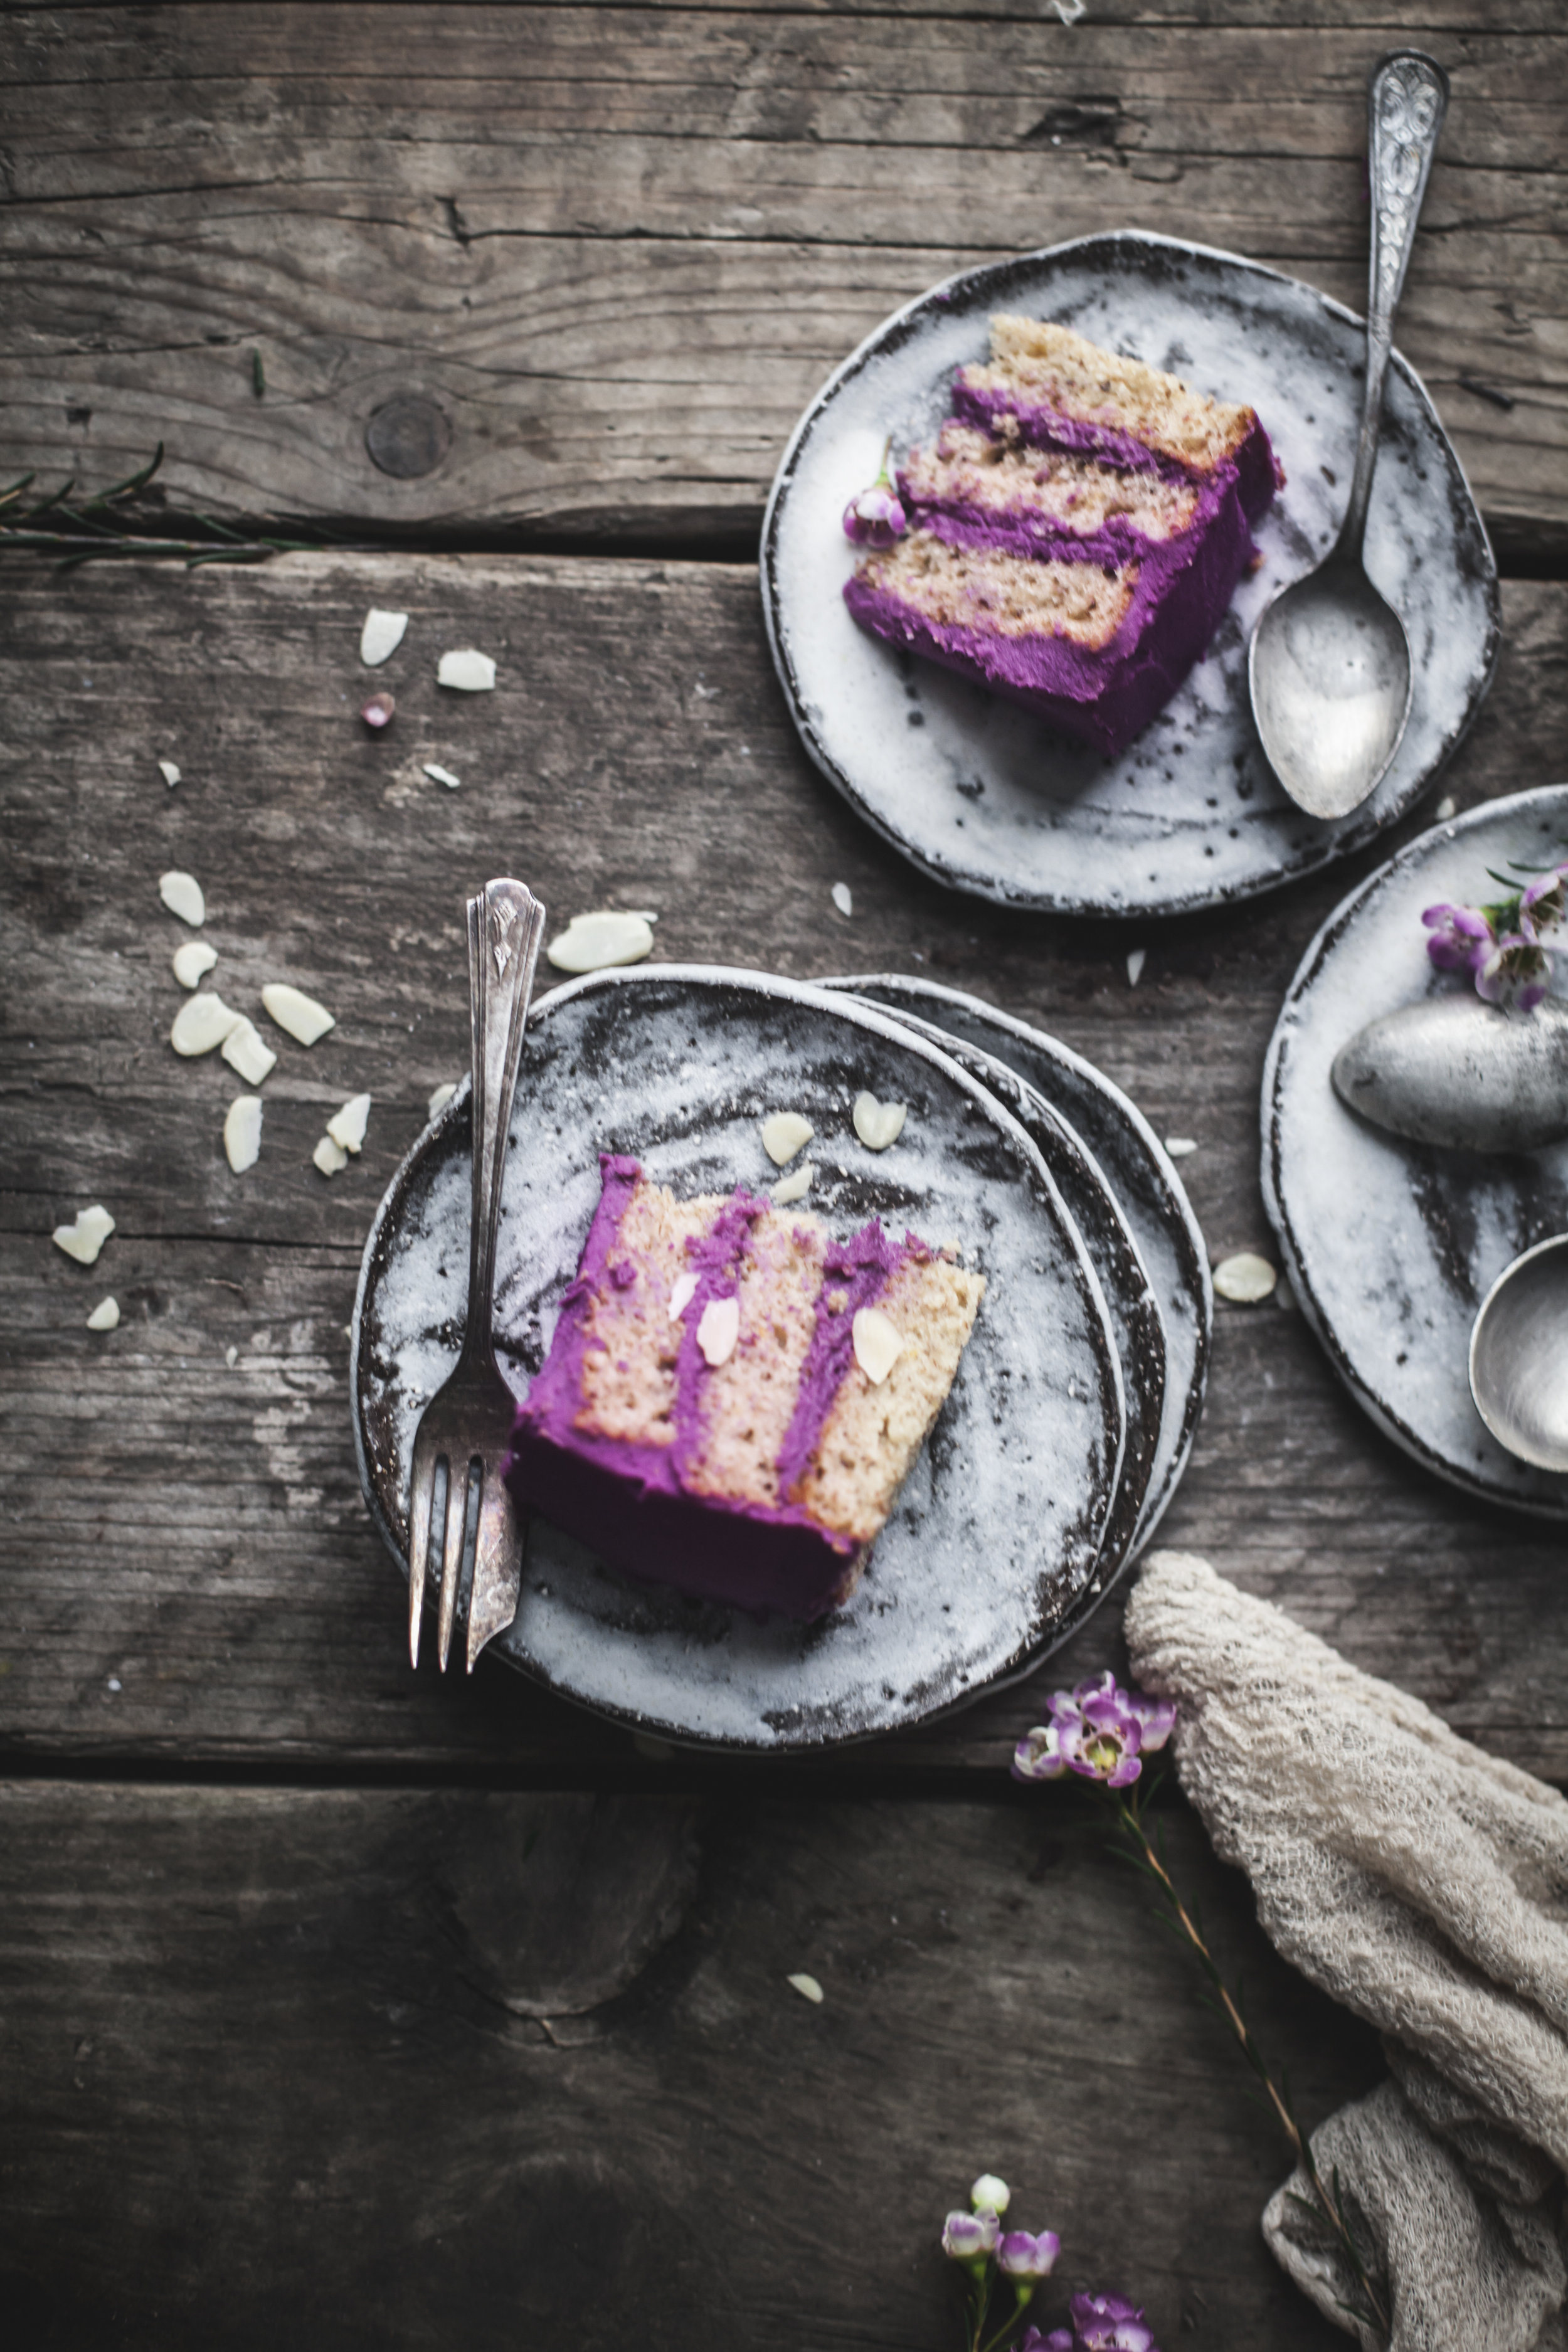 THRIVE_silvia_salvialimone2018_RECIPE_PURPLE CAKE01.jpg